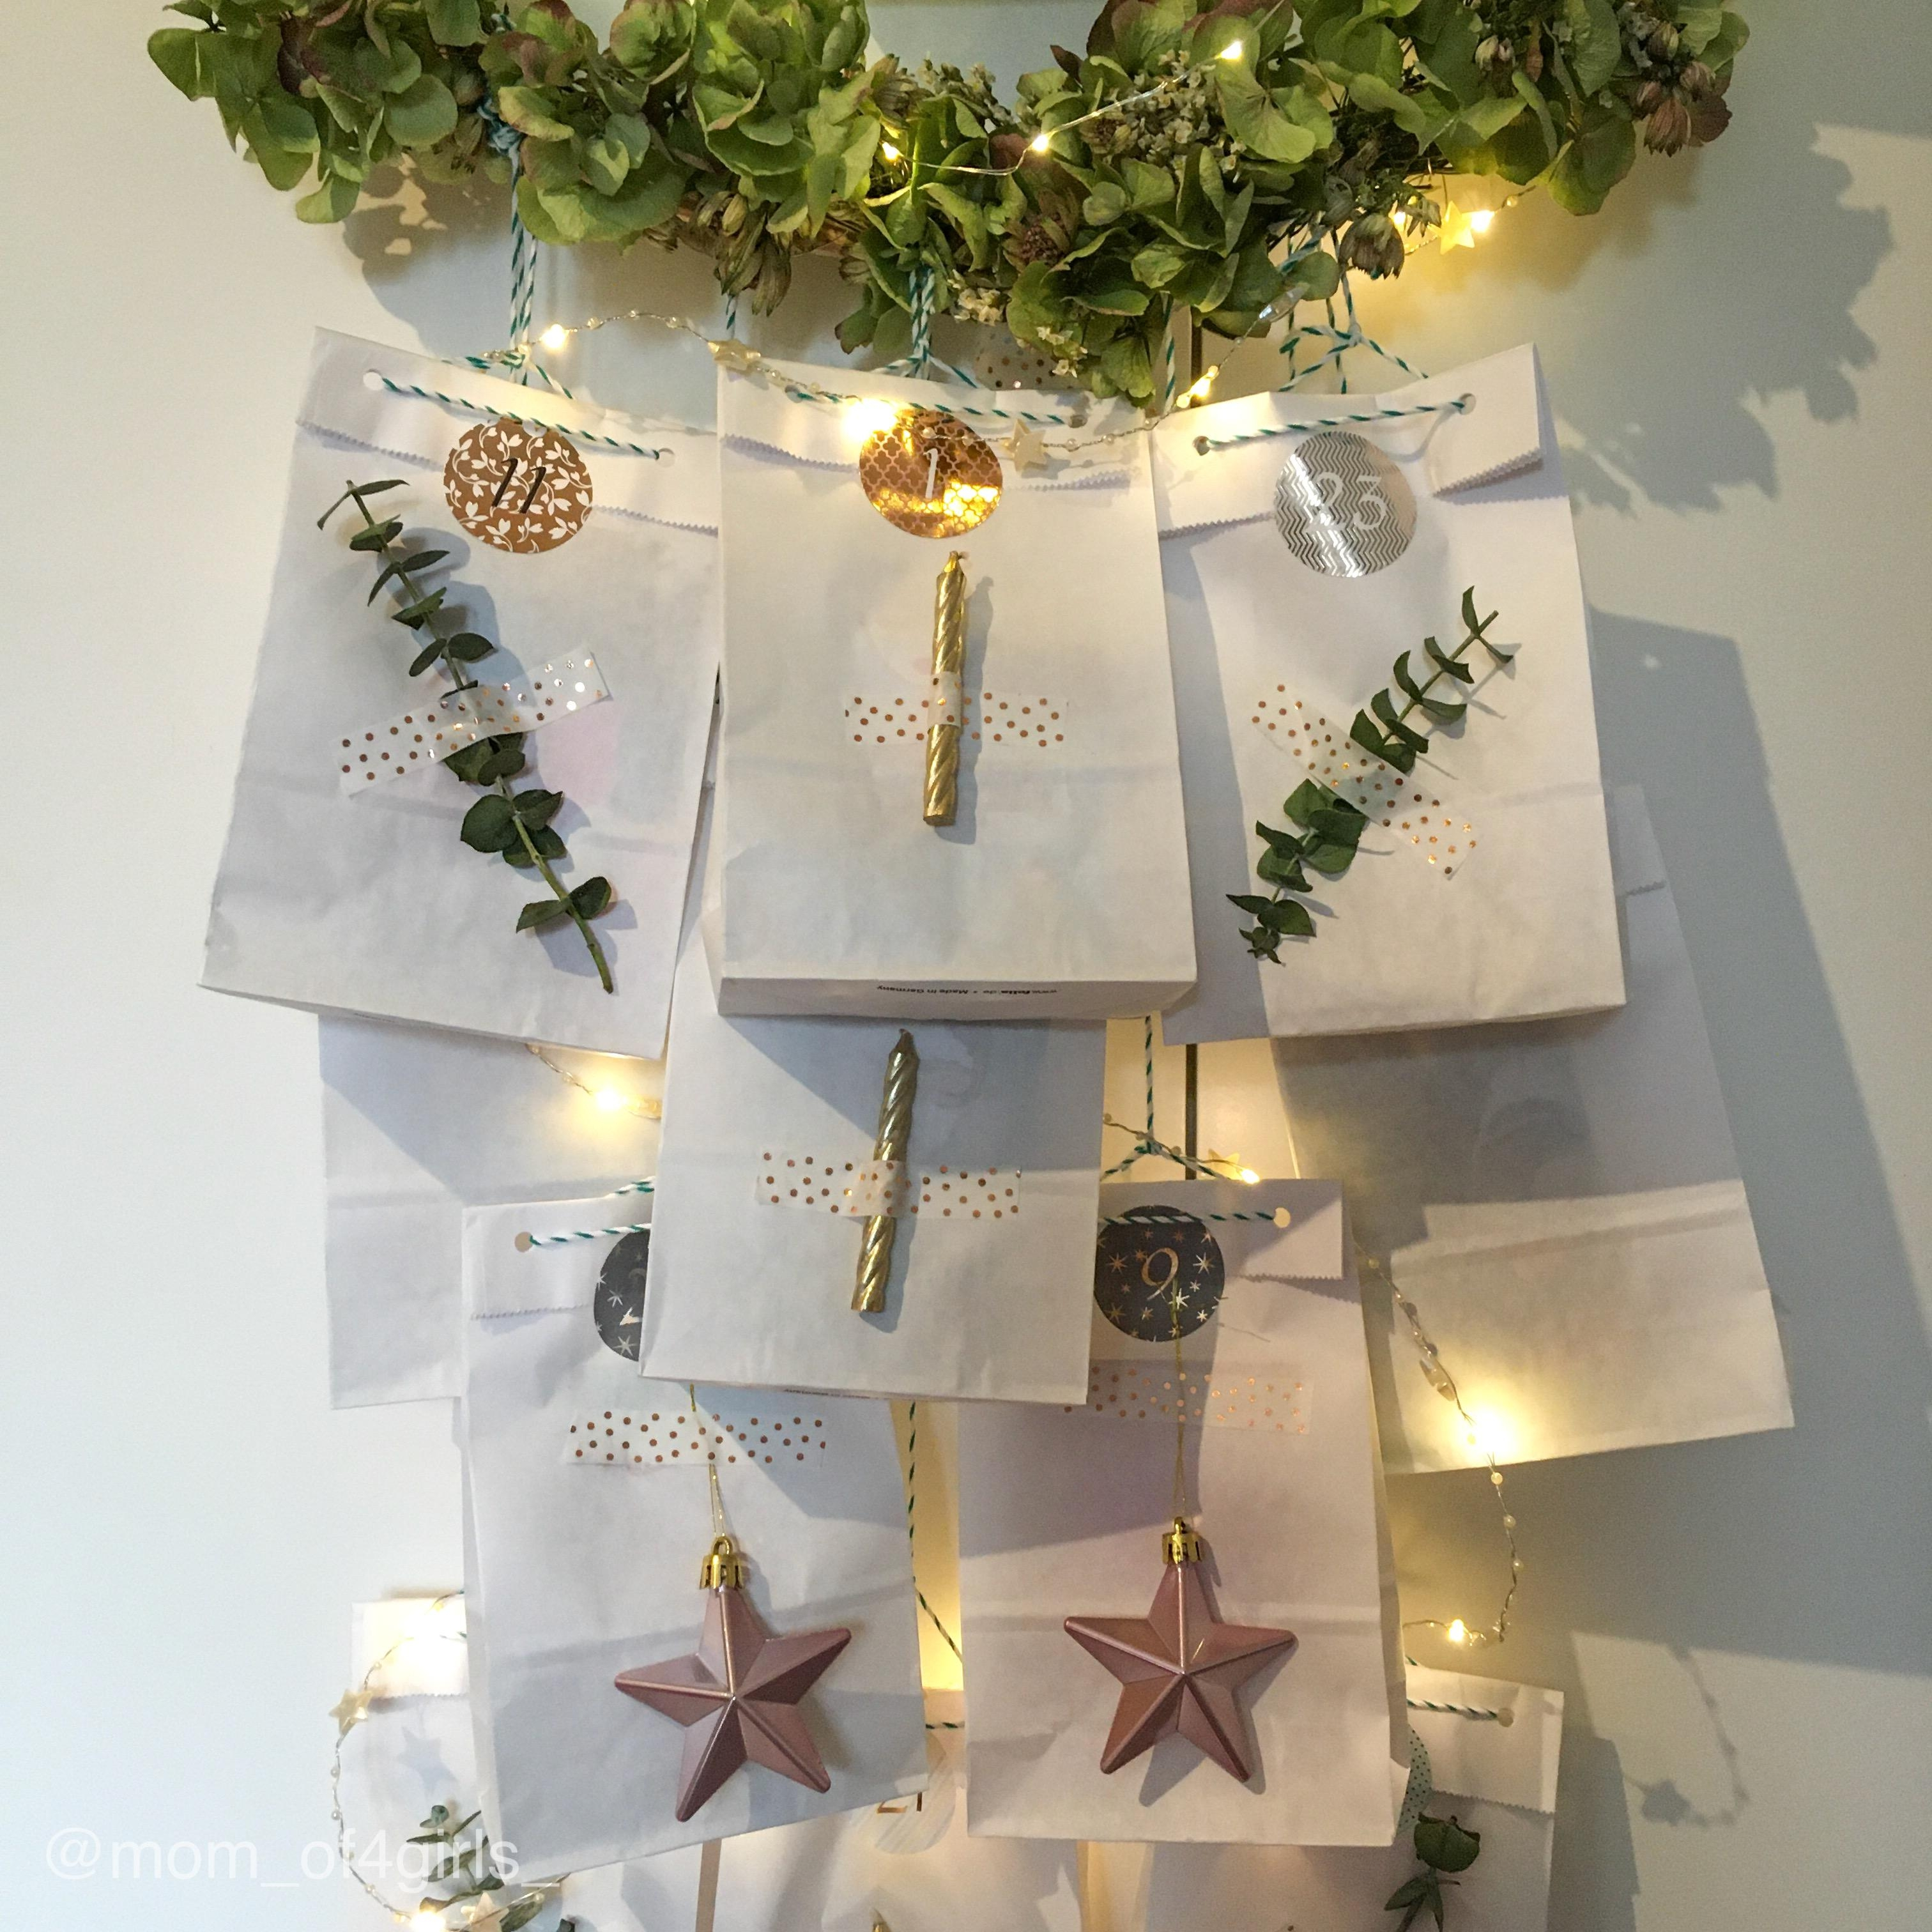 1 our of 4 Advent calendars #adventskalender #adventskalenderdiy #diyadventskalender #adventskranz #wreth #kranz #diy